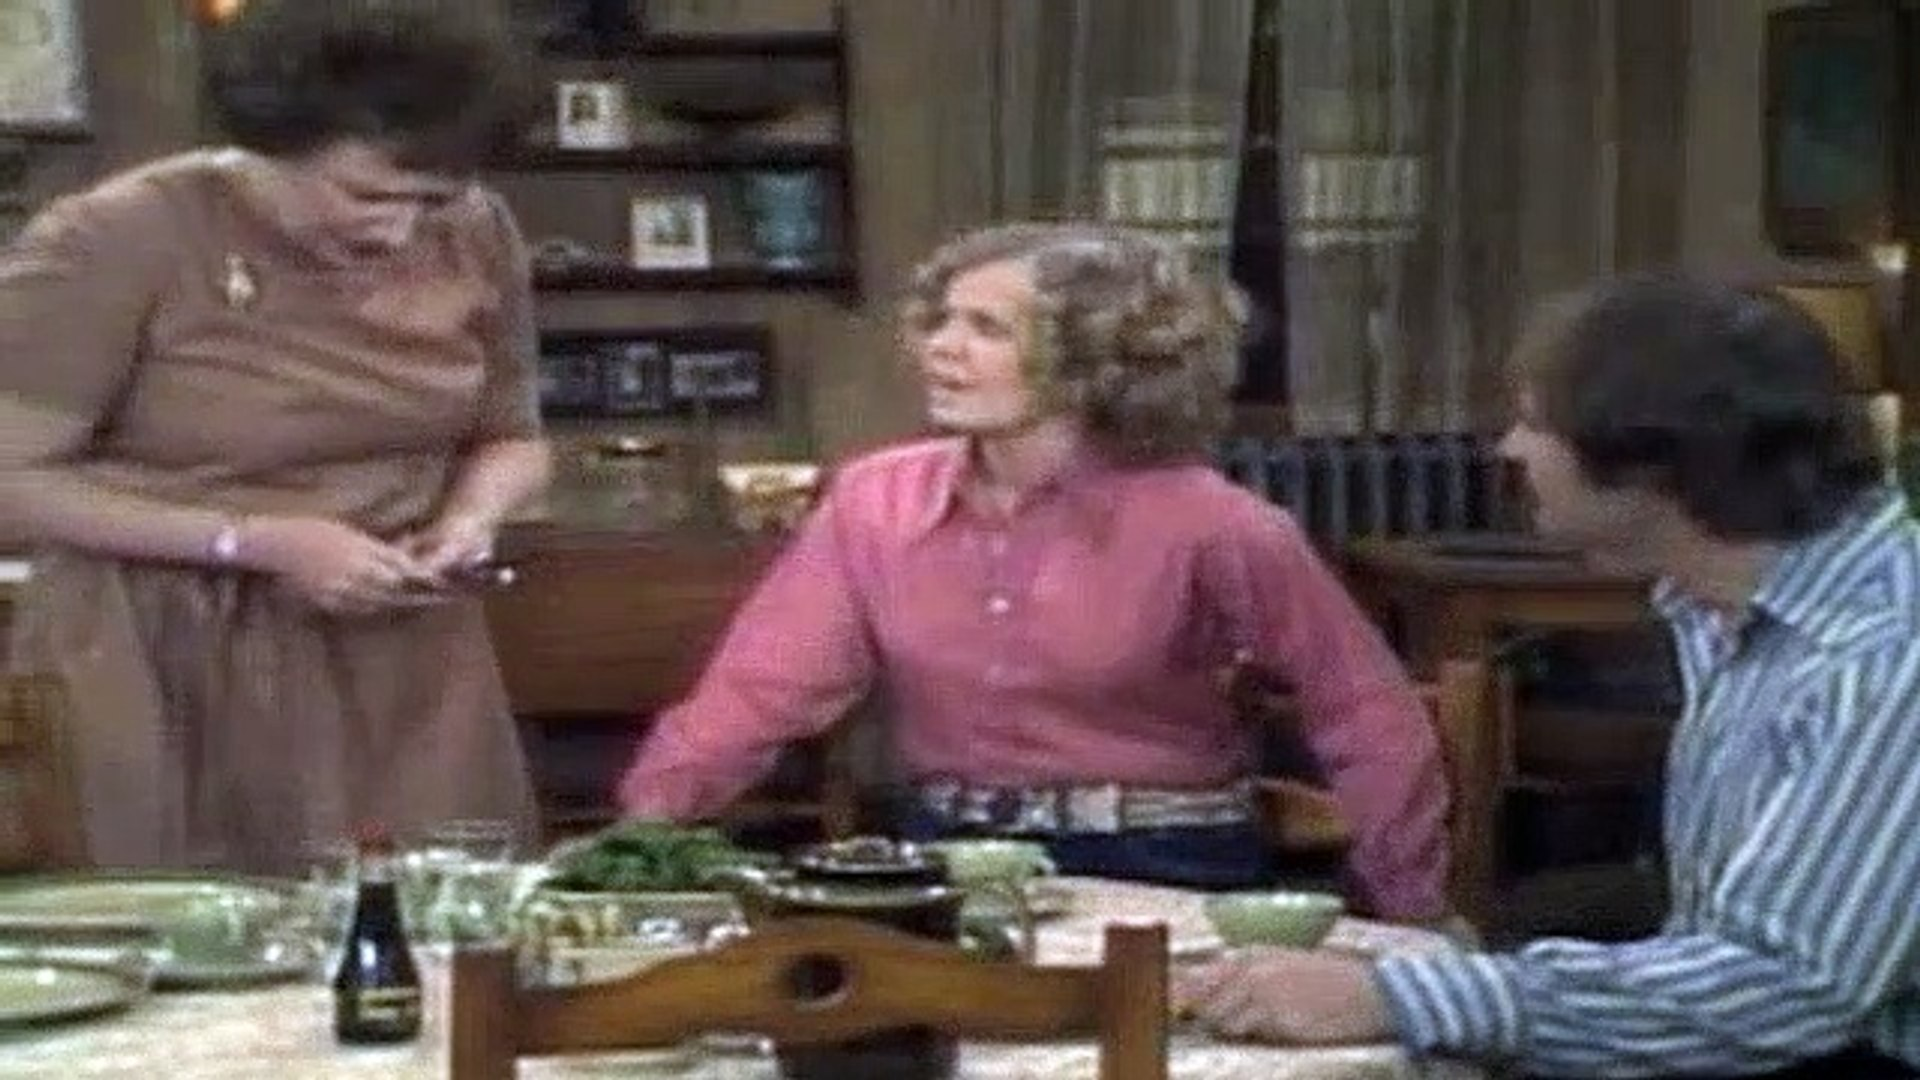 All In The Family Season 1 Episode 7 Mike's Hippie Friends Come To Visit